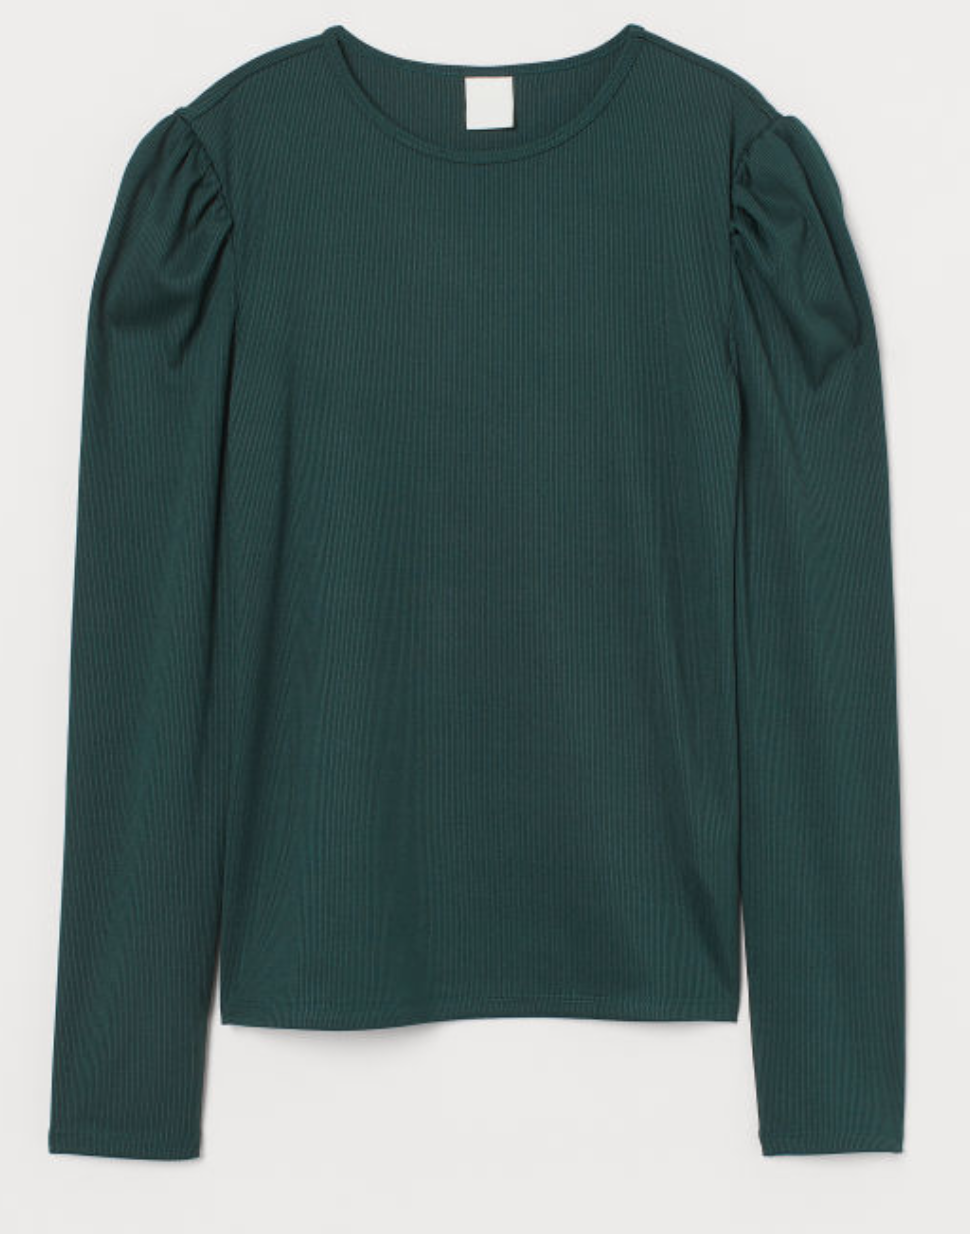 Puff-sleeved Top